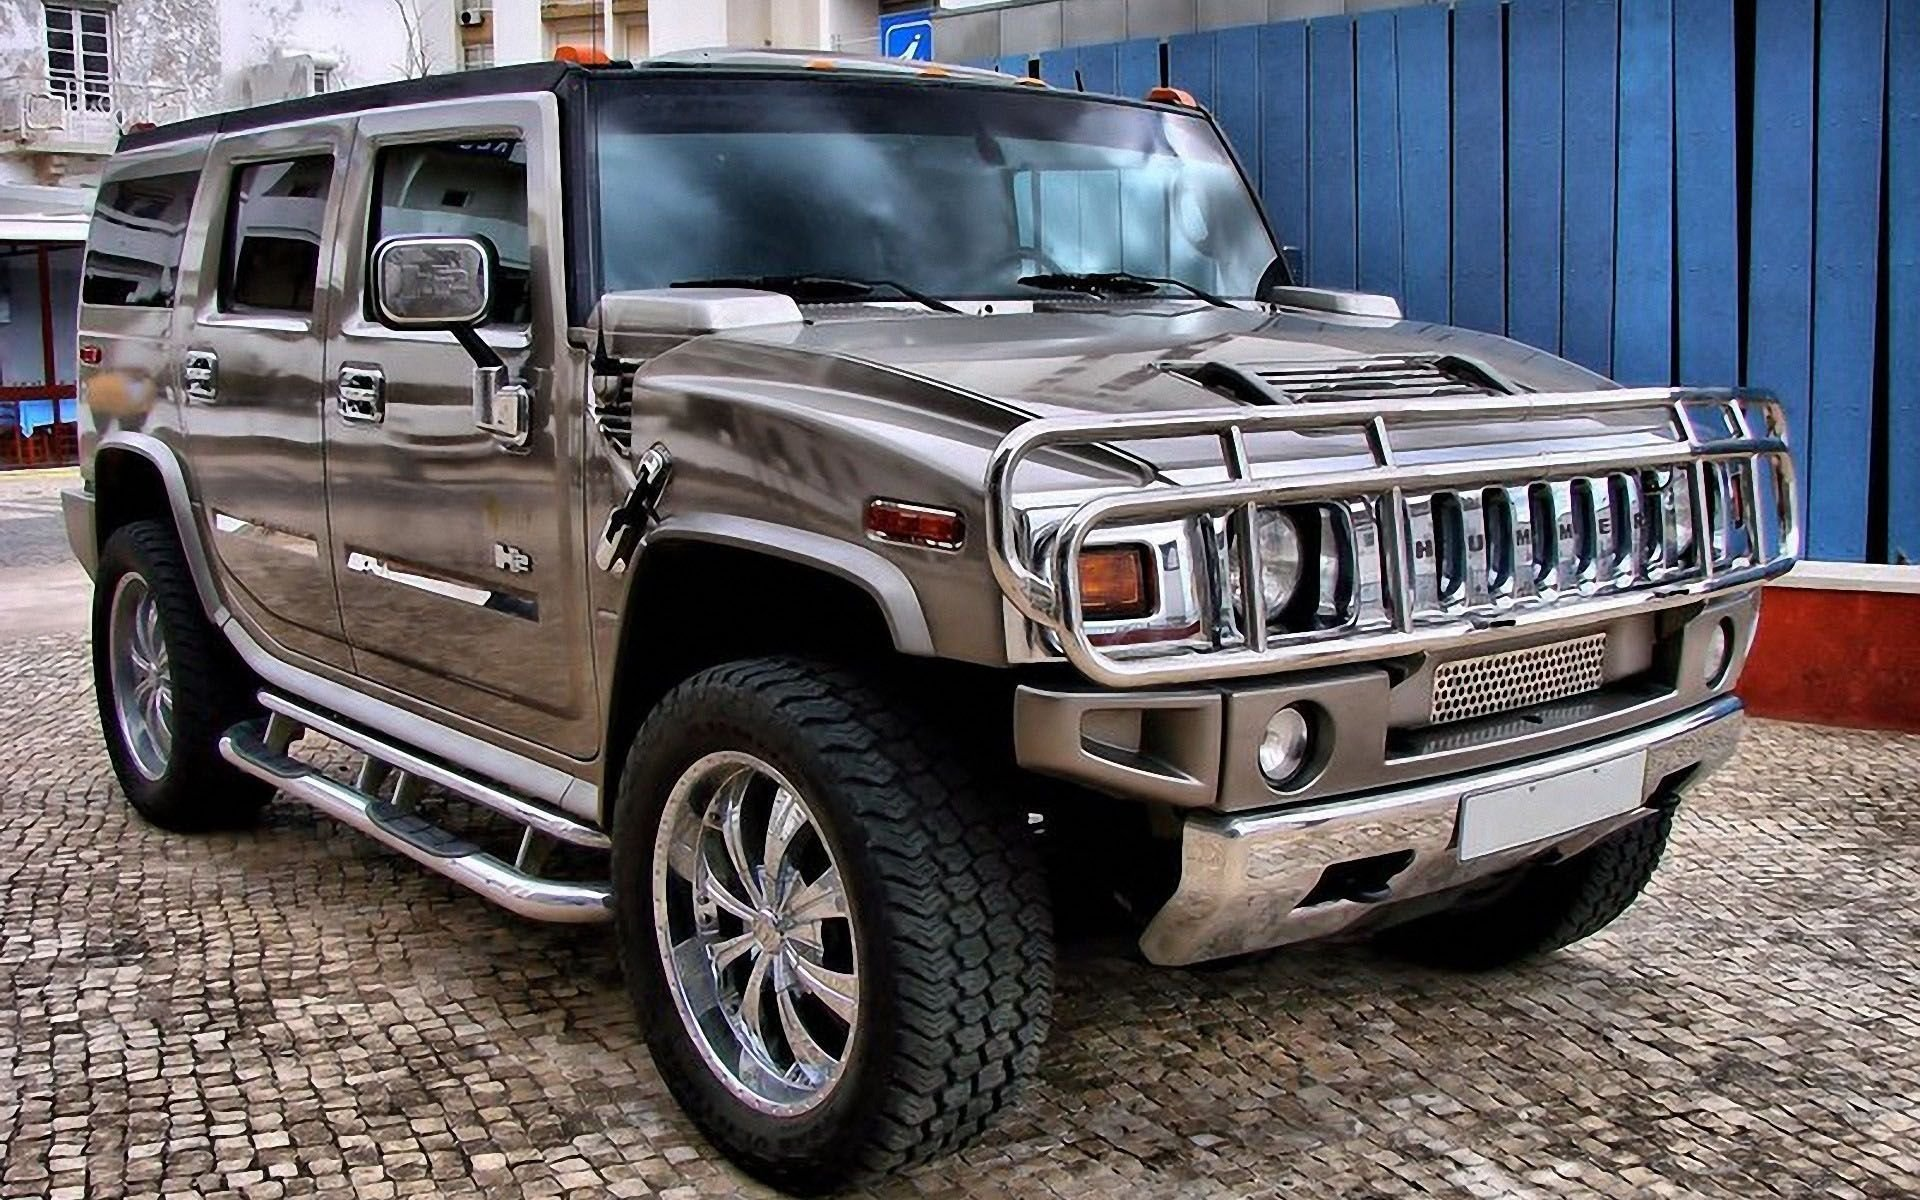 Latest Hummer H2 Car Wallpapers Hd Http Whatstrendingonline Free Download